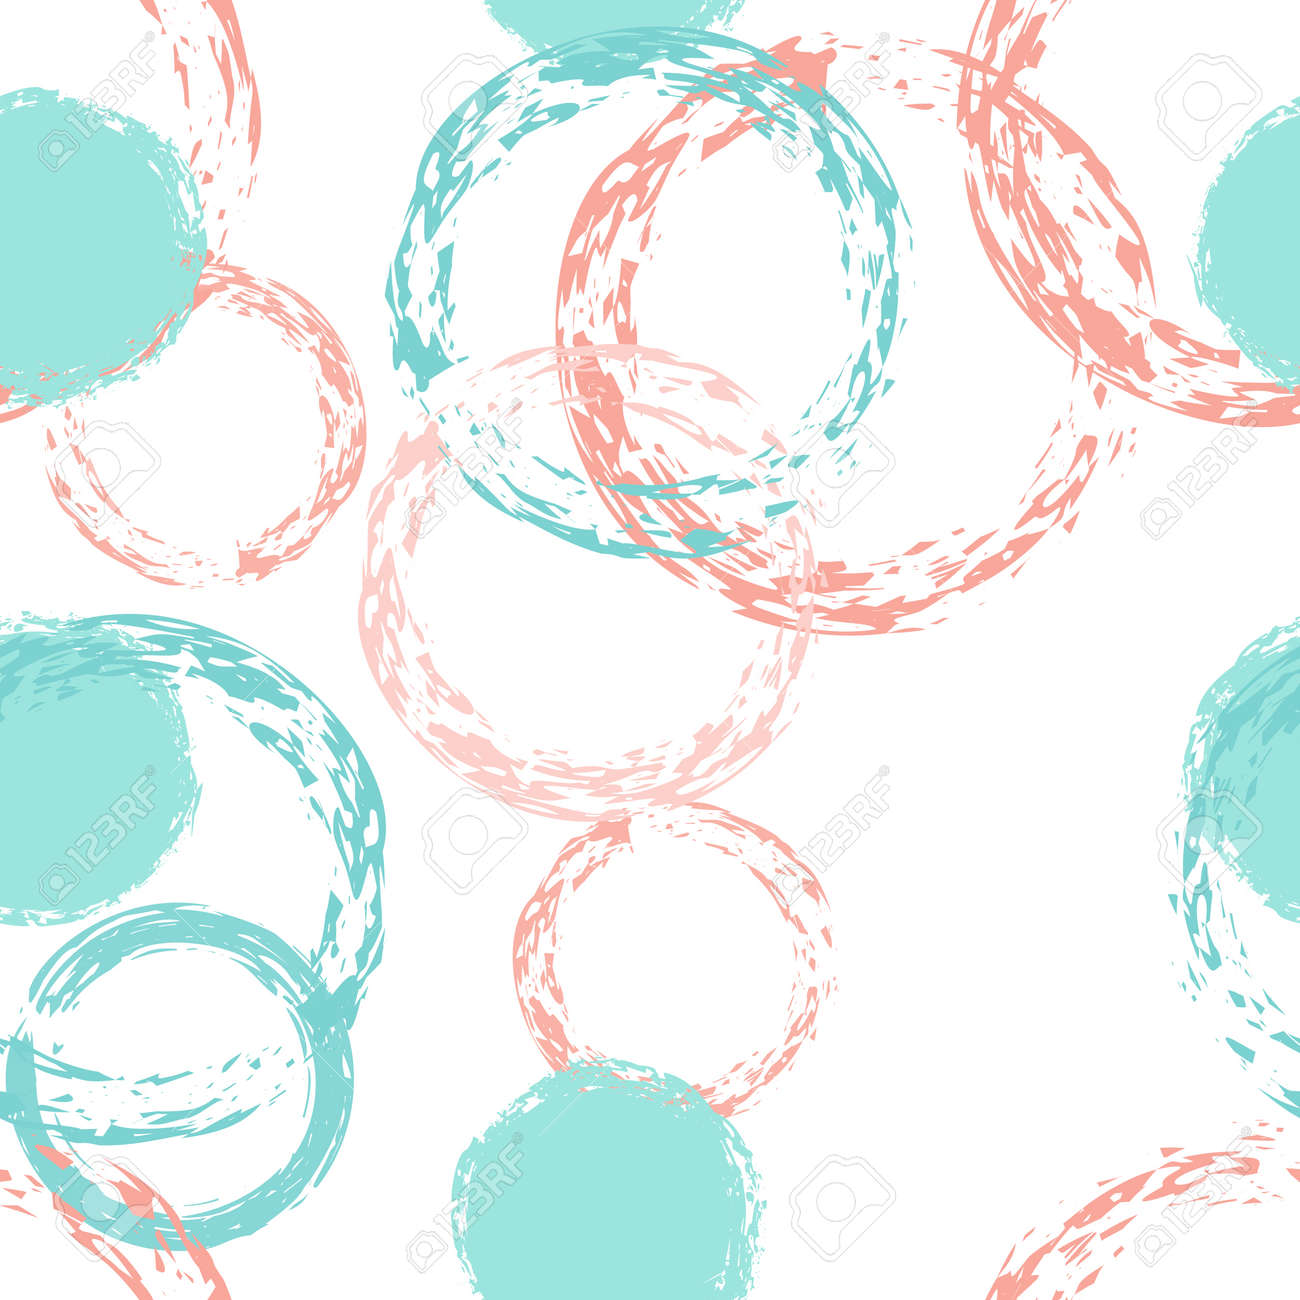 Black Brush Circle. Vector Seamless Pattern. Multicolor Ornament. White Abstract Background With Watercolor Fall Chaotic Shapes. Simple Soft Packaging. Chalk Brush Rounds, Confetti. - 150786174